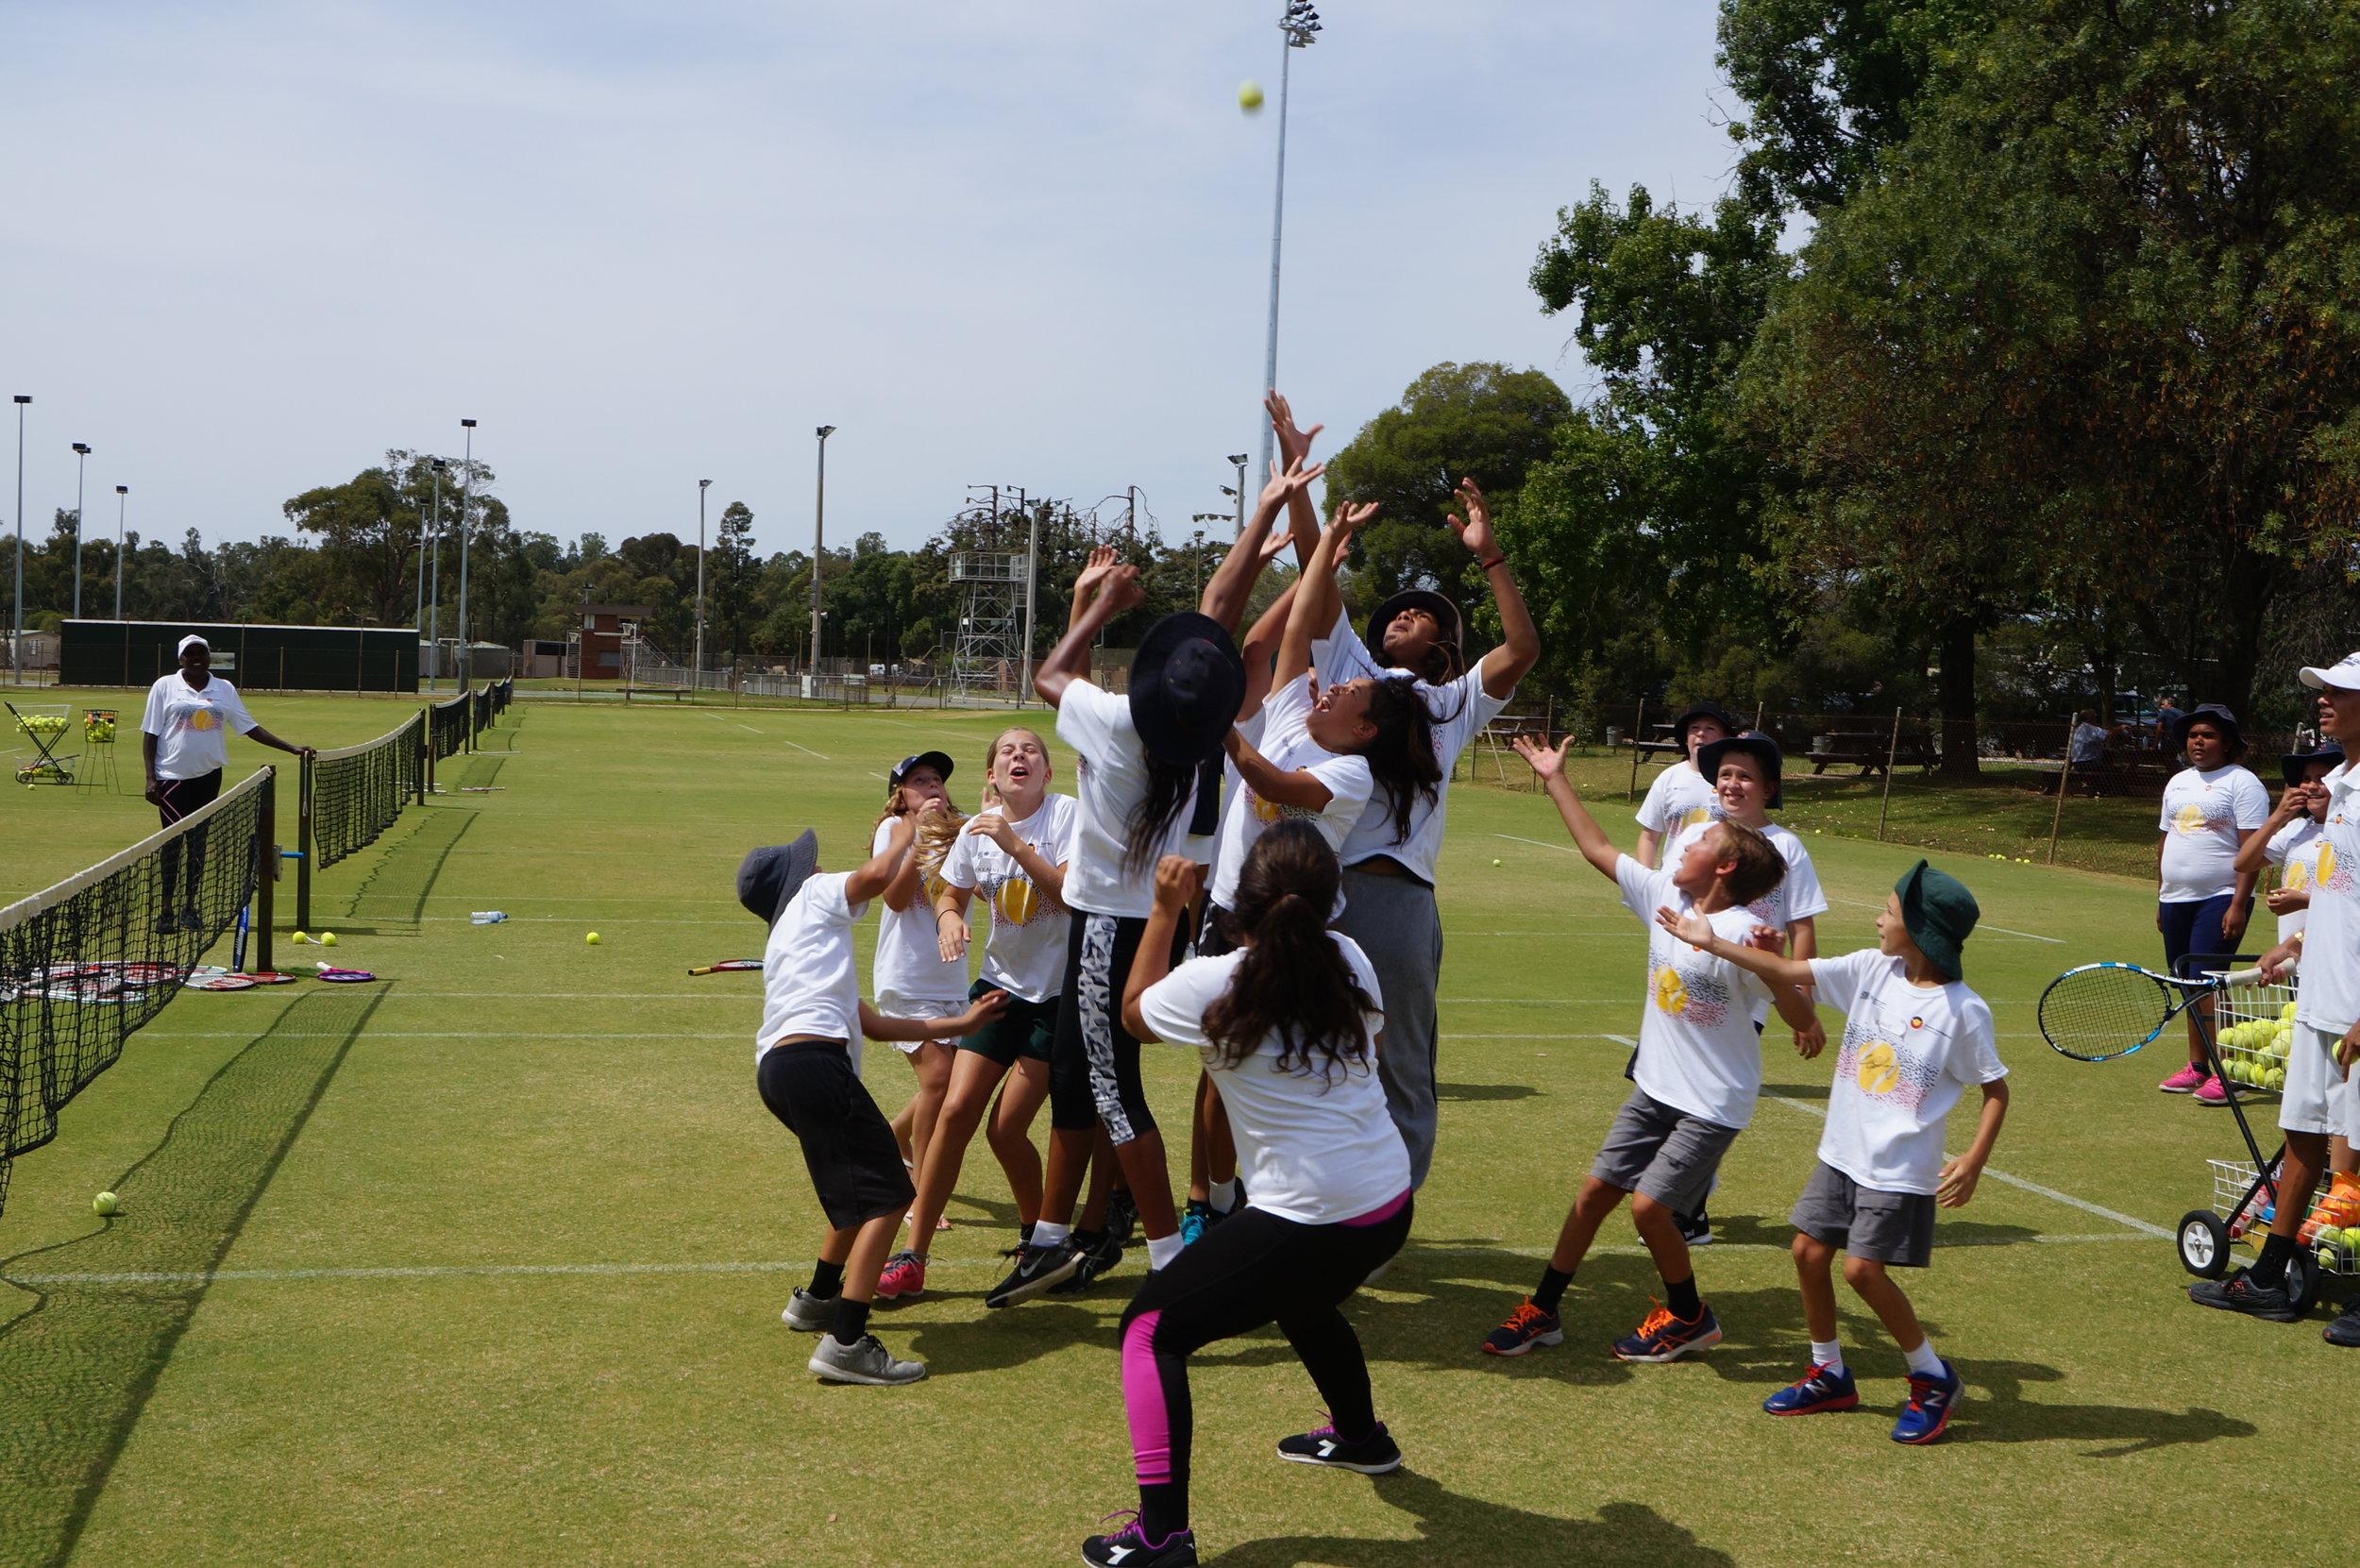 Leaping to survive at Cricket - Tennis!